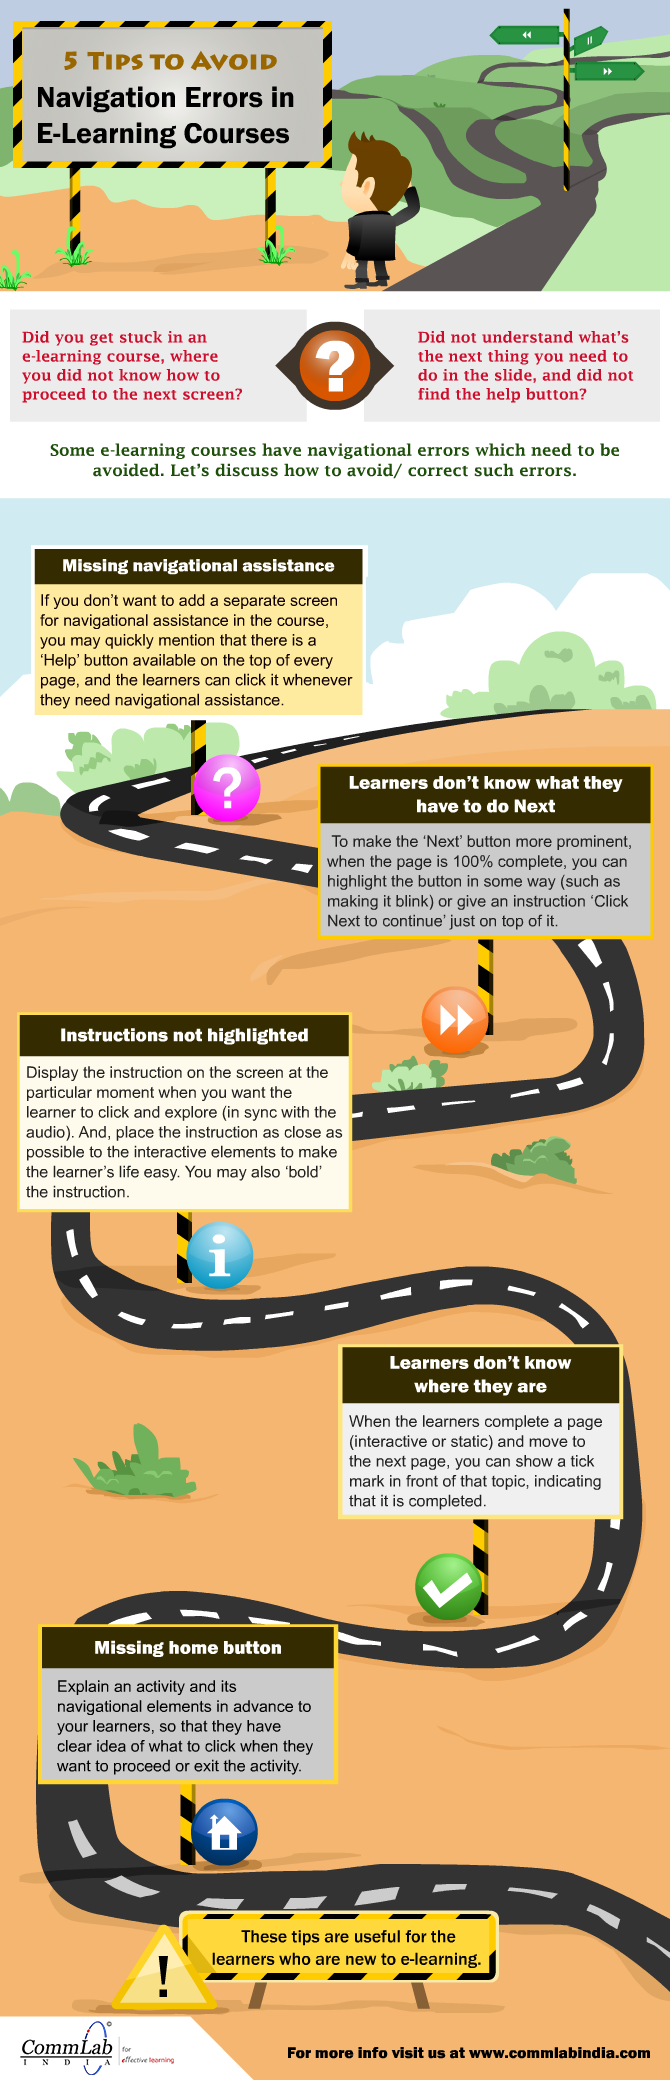 E-learning Design – 5 Navigation Errors That Affect Your Online Course [Infographic]